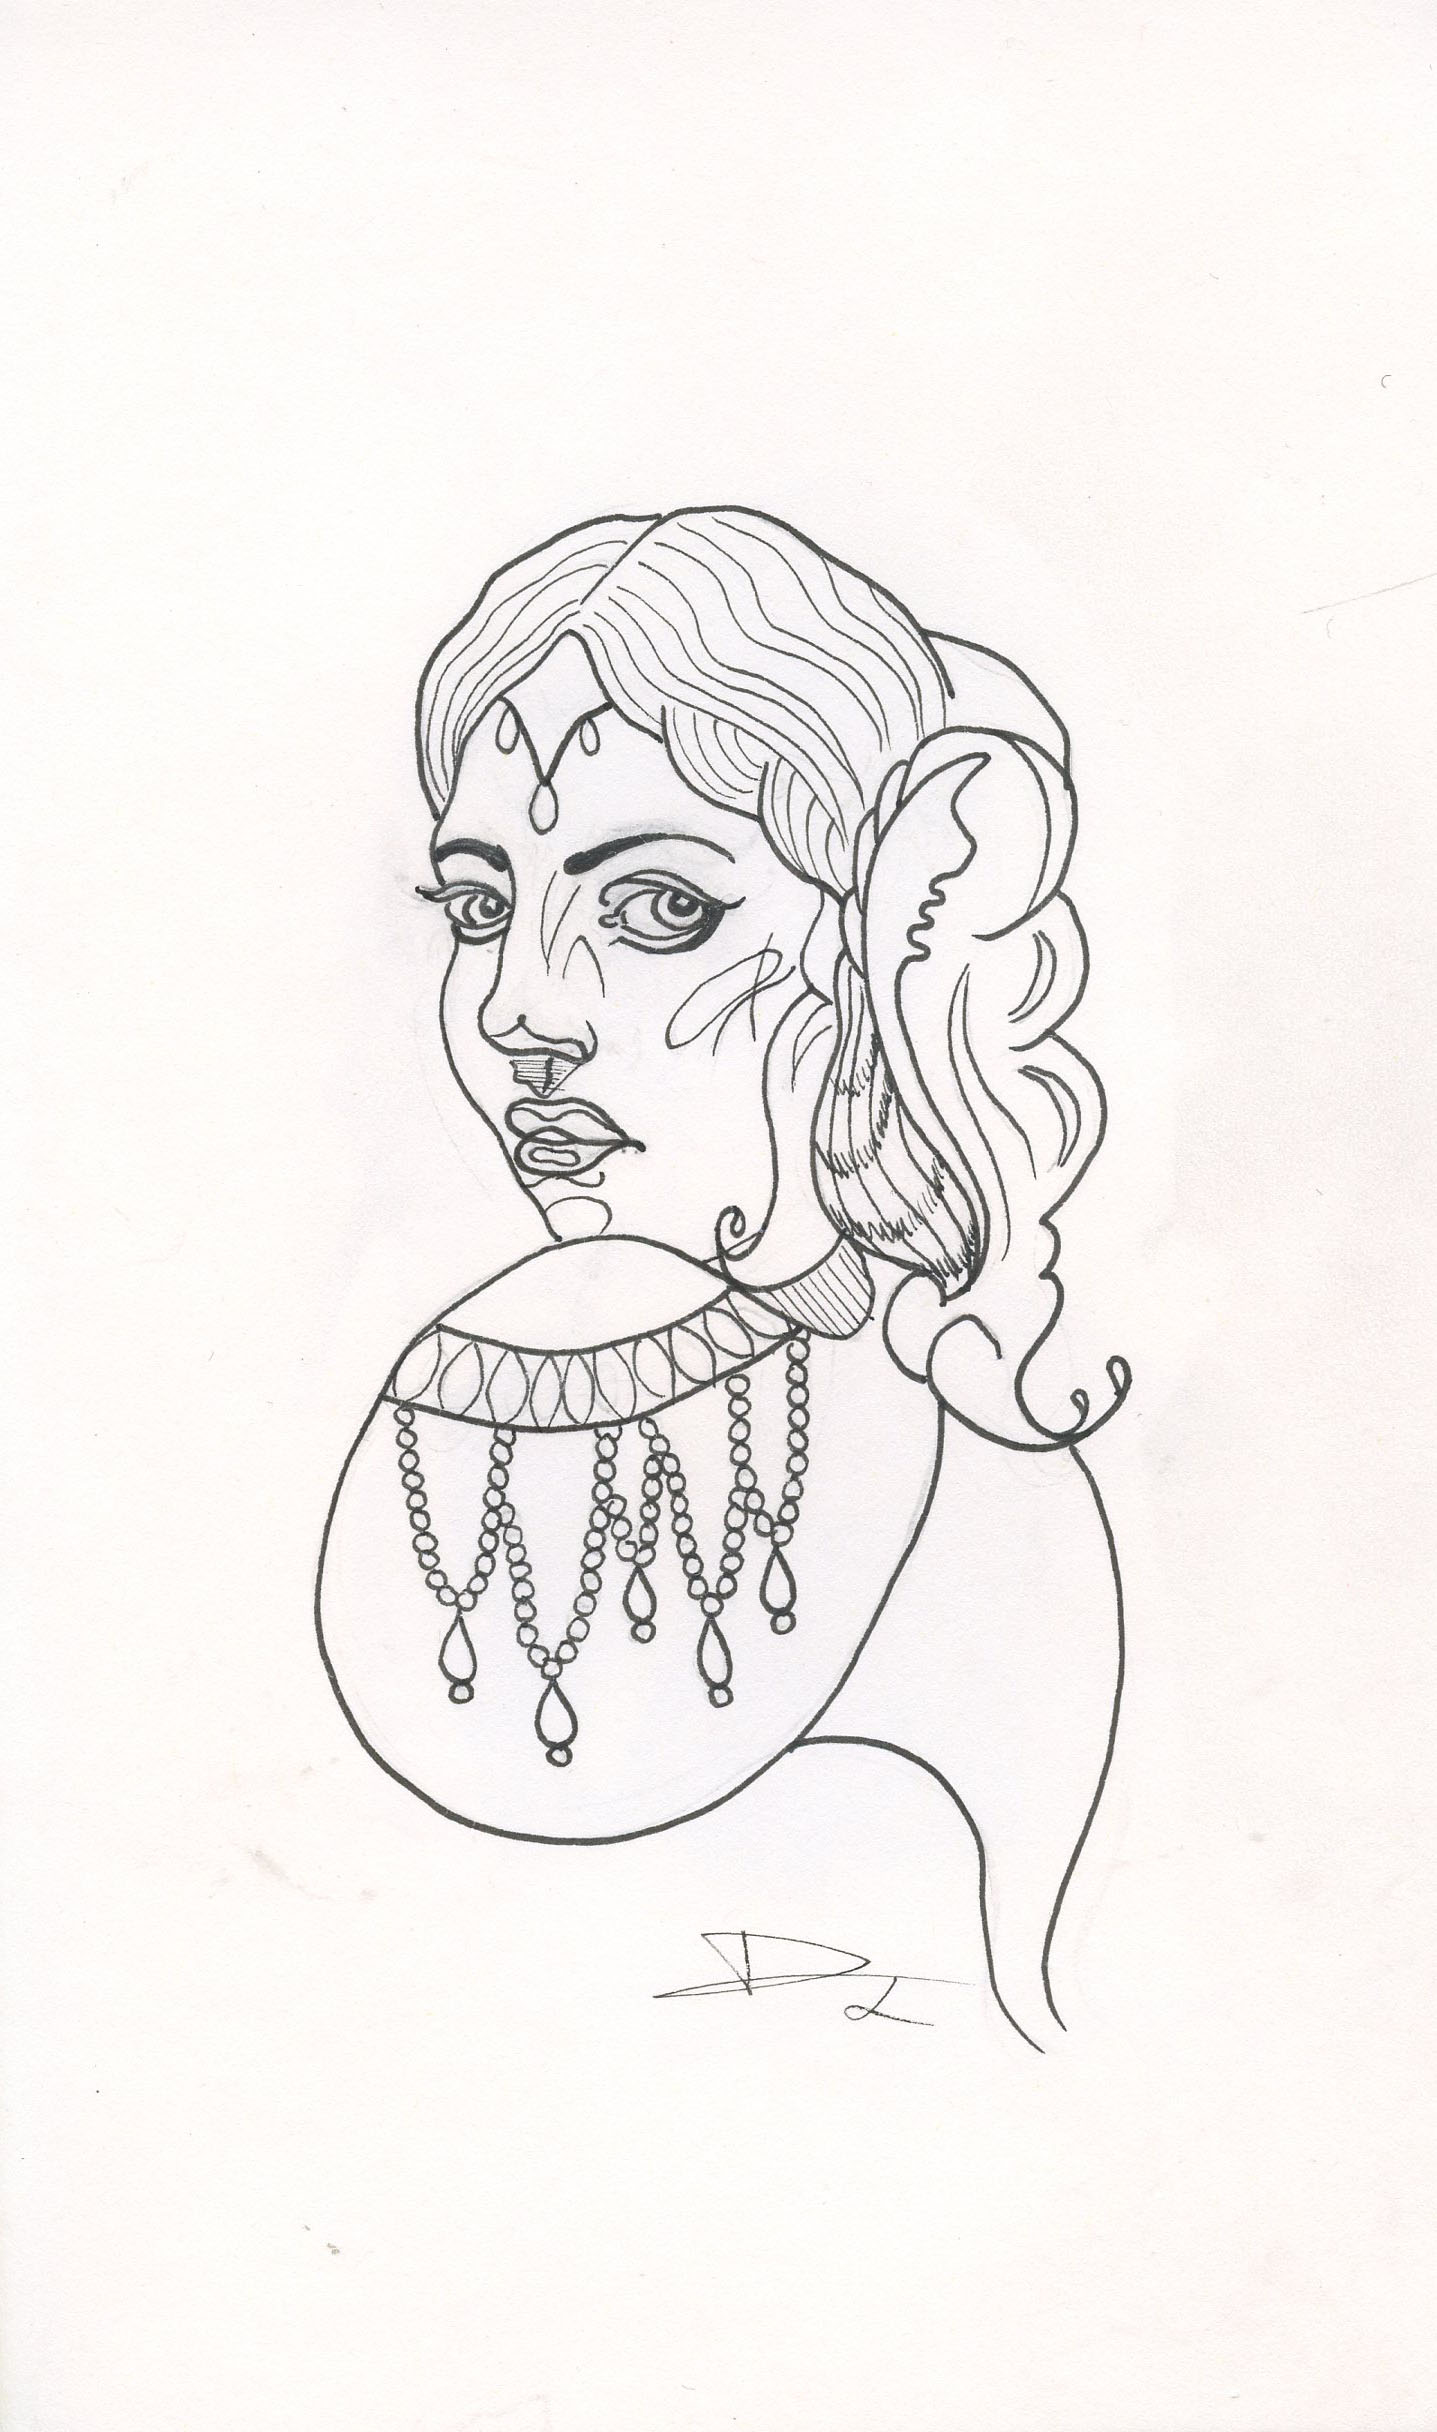 Neotraditional Woman